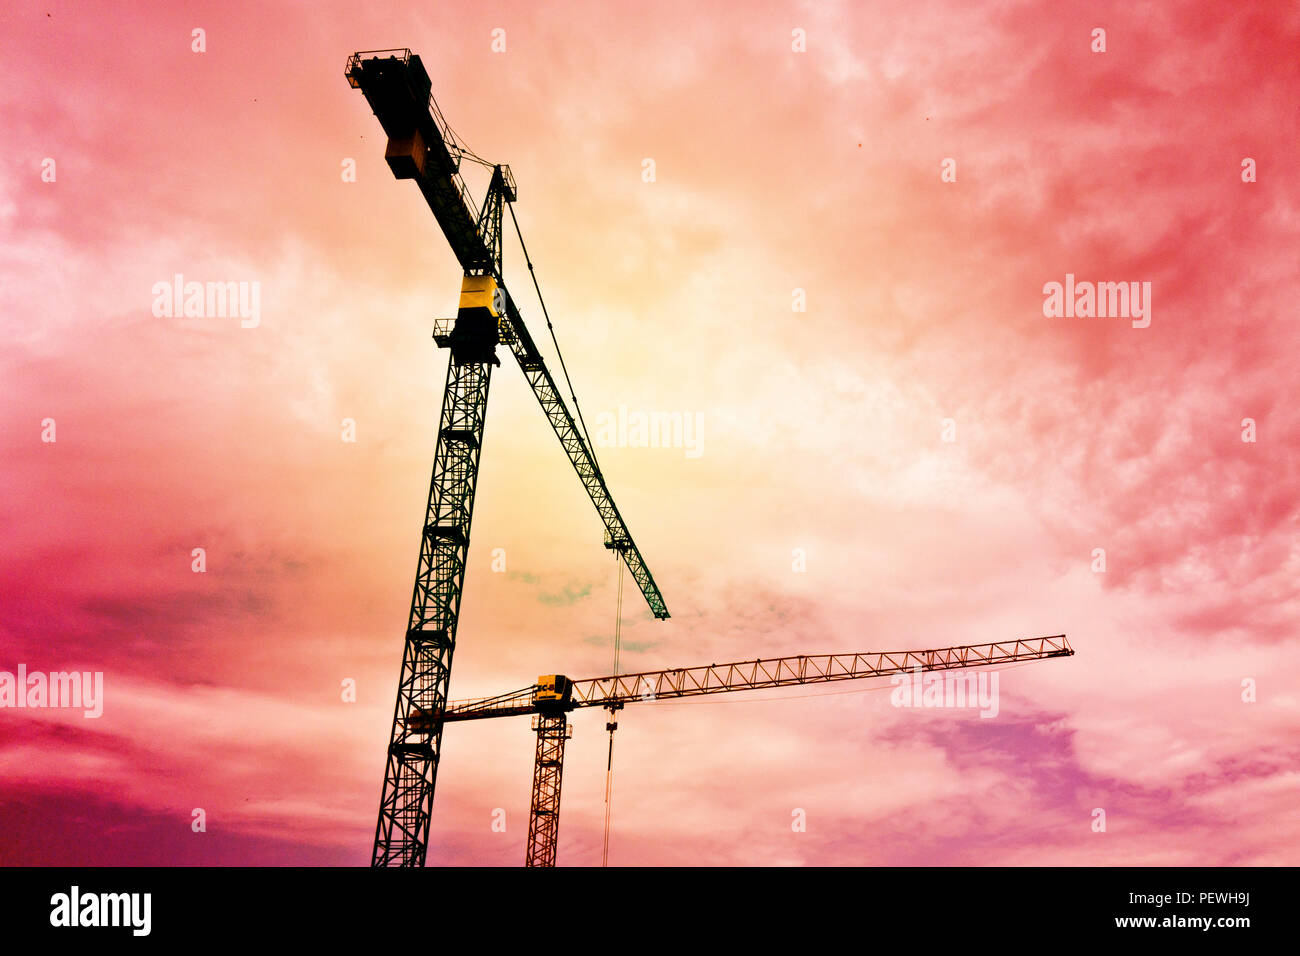 construction tower cranes - Stock Image